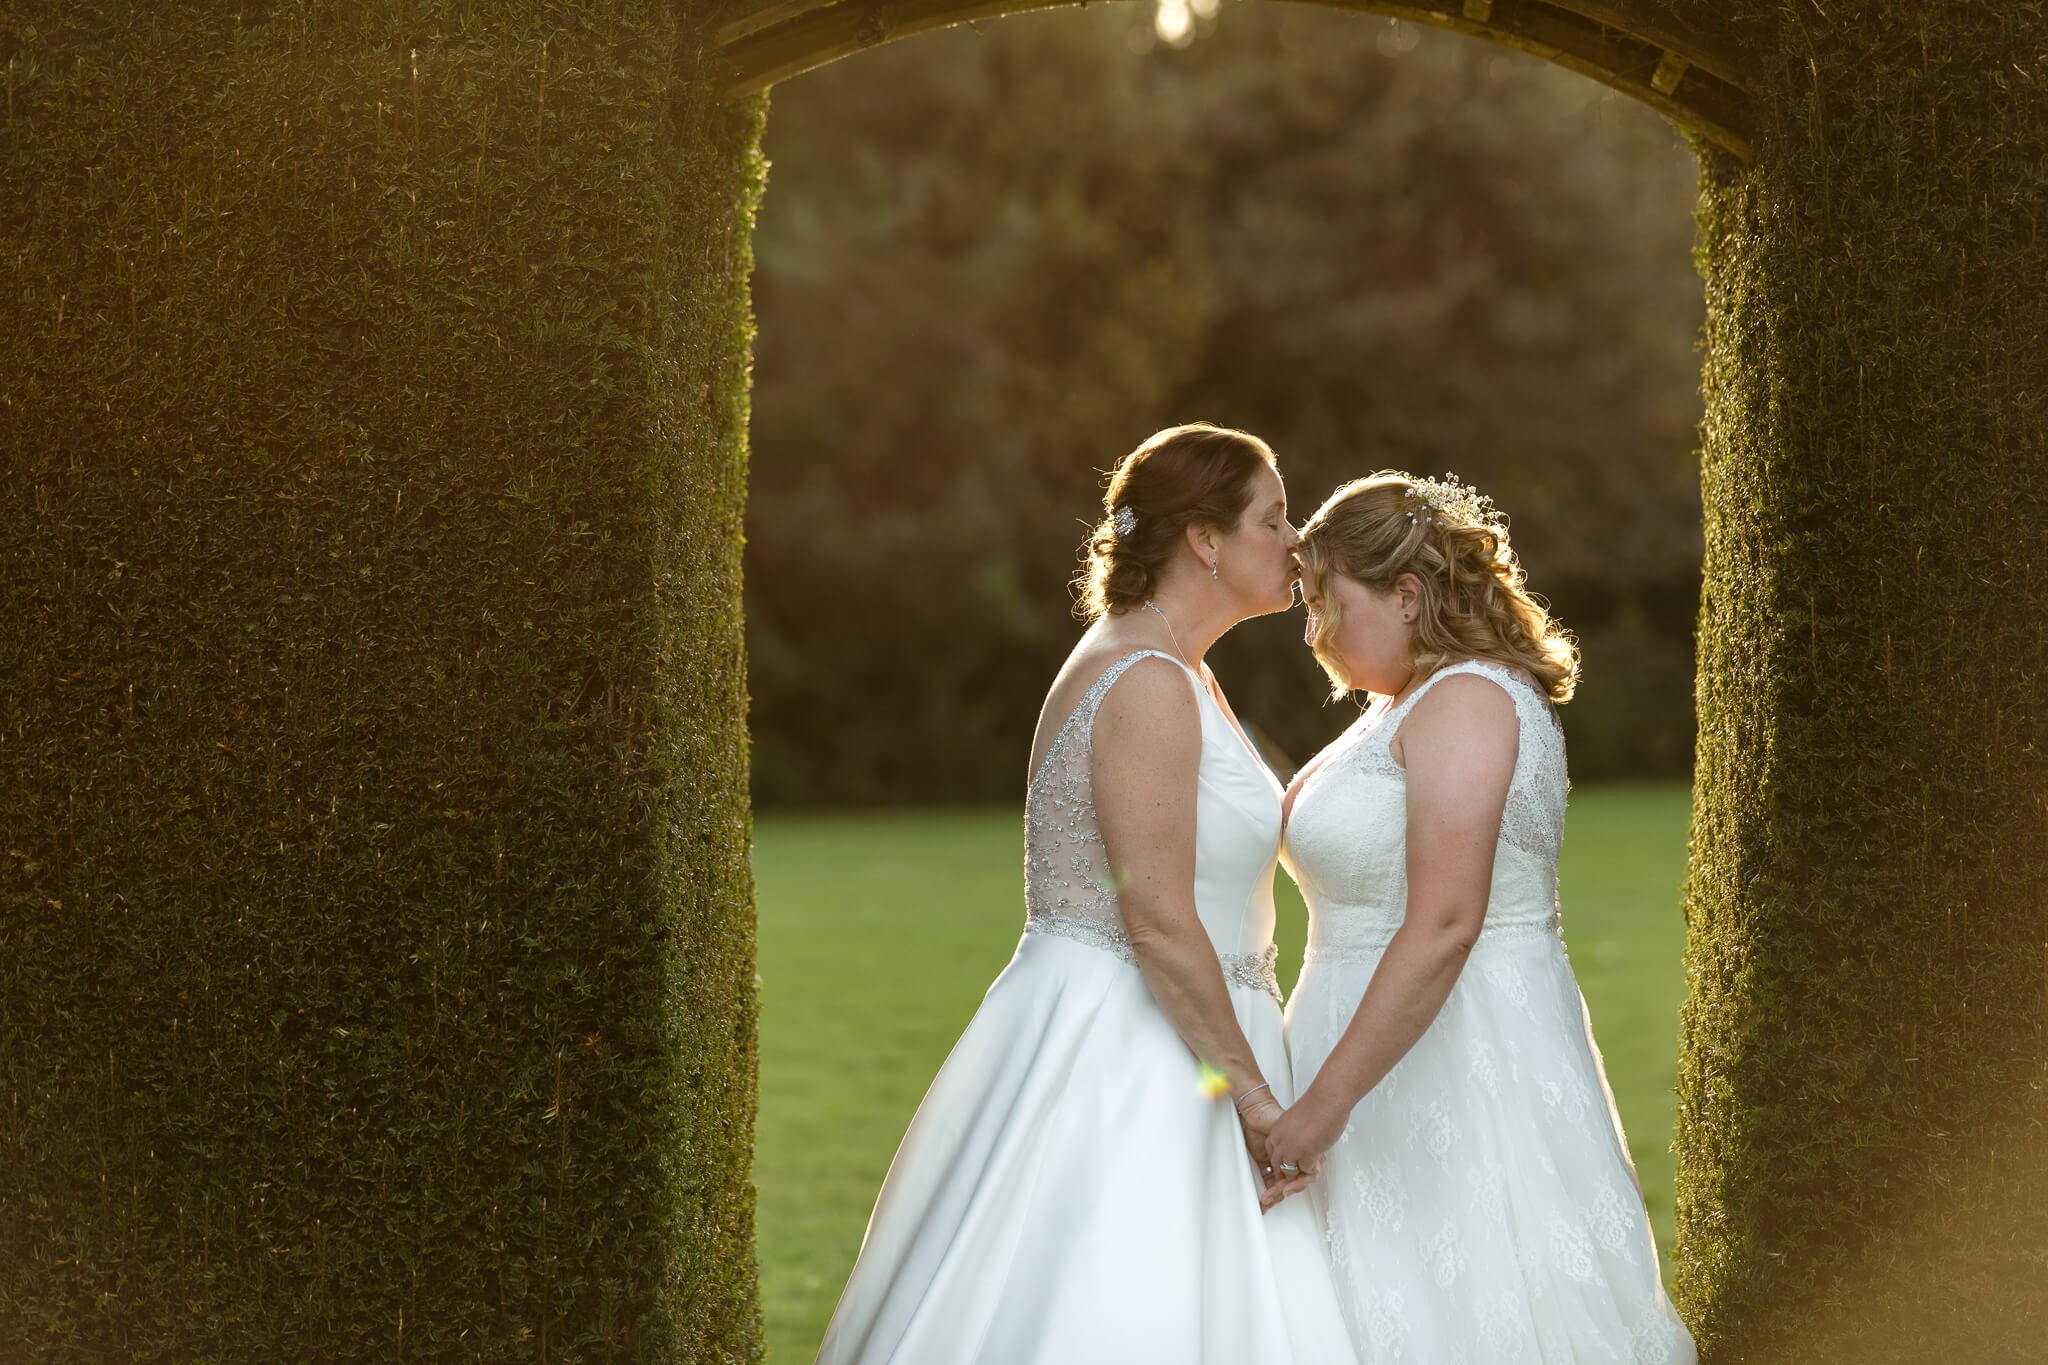 golden hour wedding photography by lauren